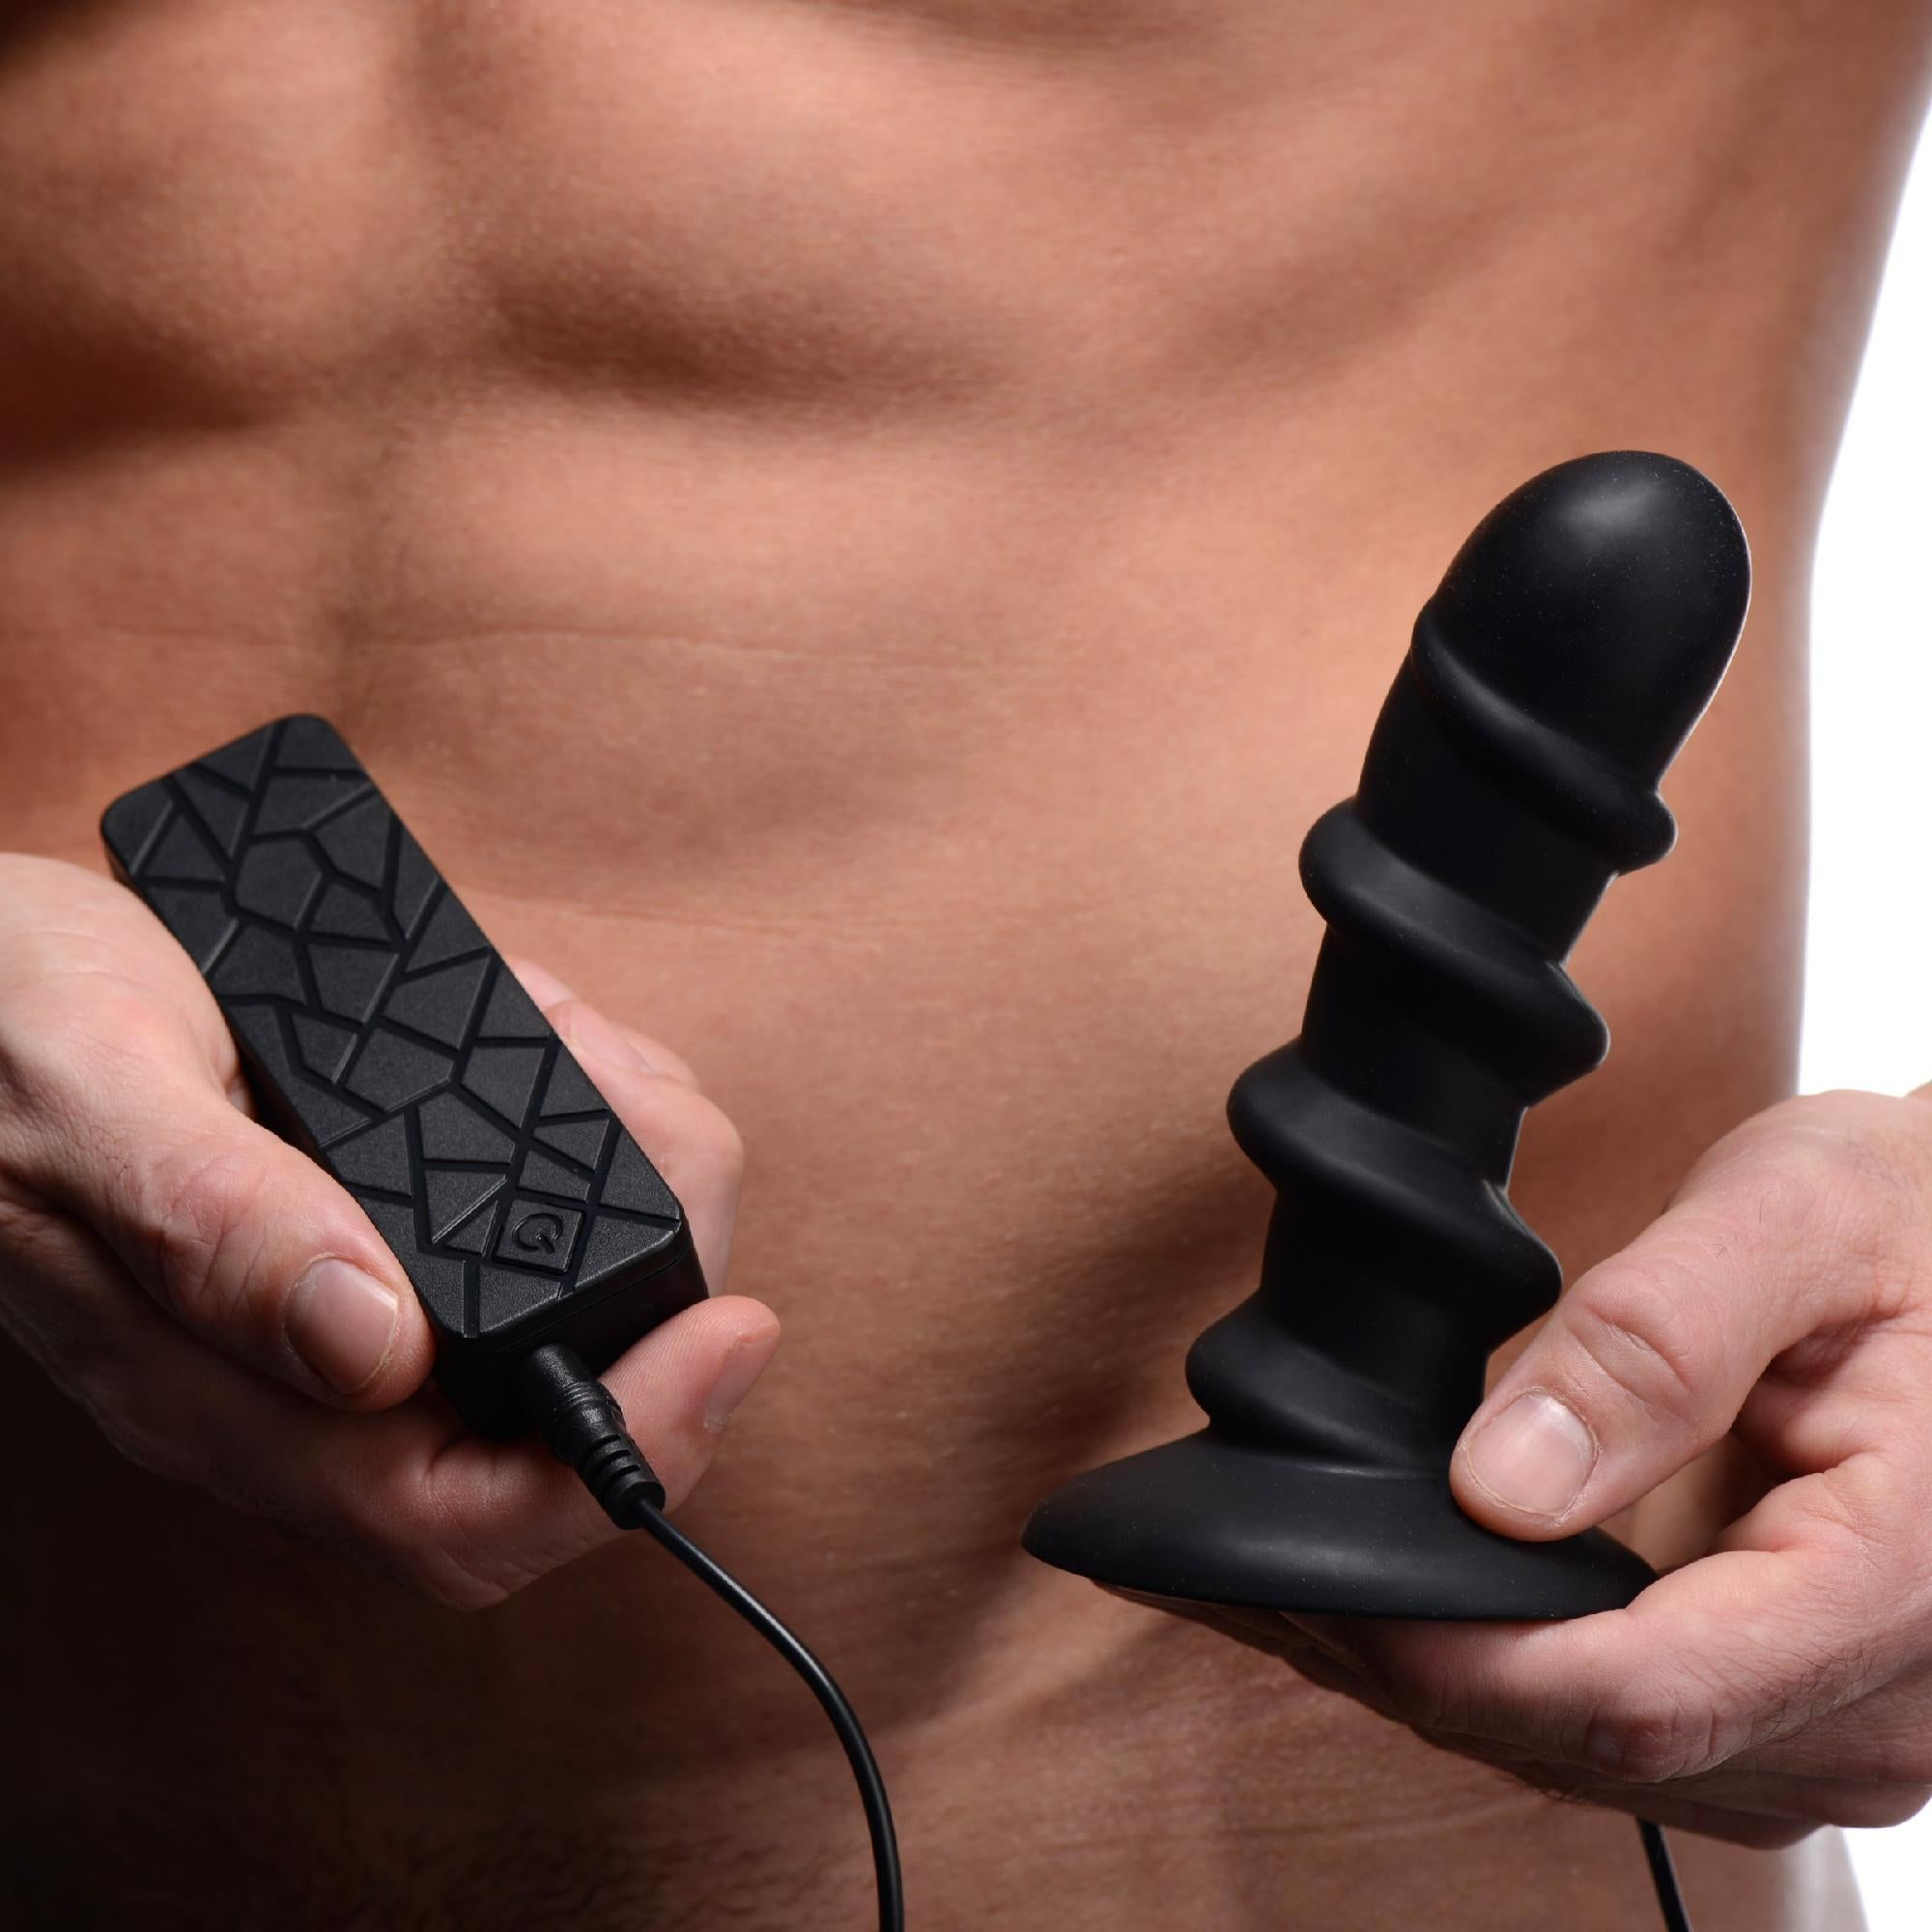 Ascend Silicone Swirl P-Spot Stimulator with Remote